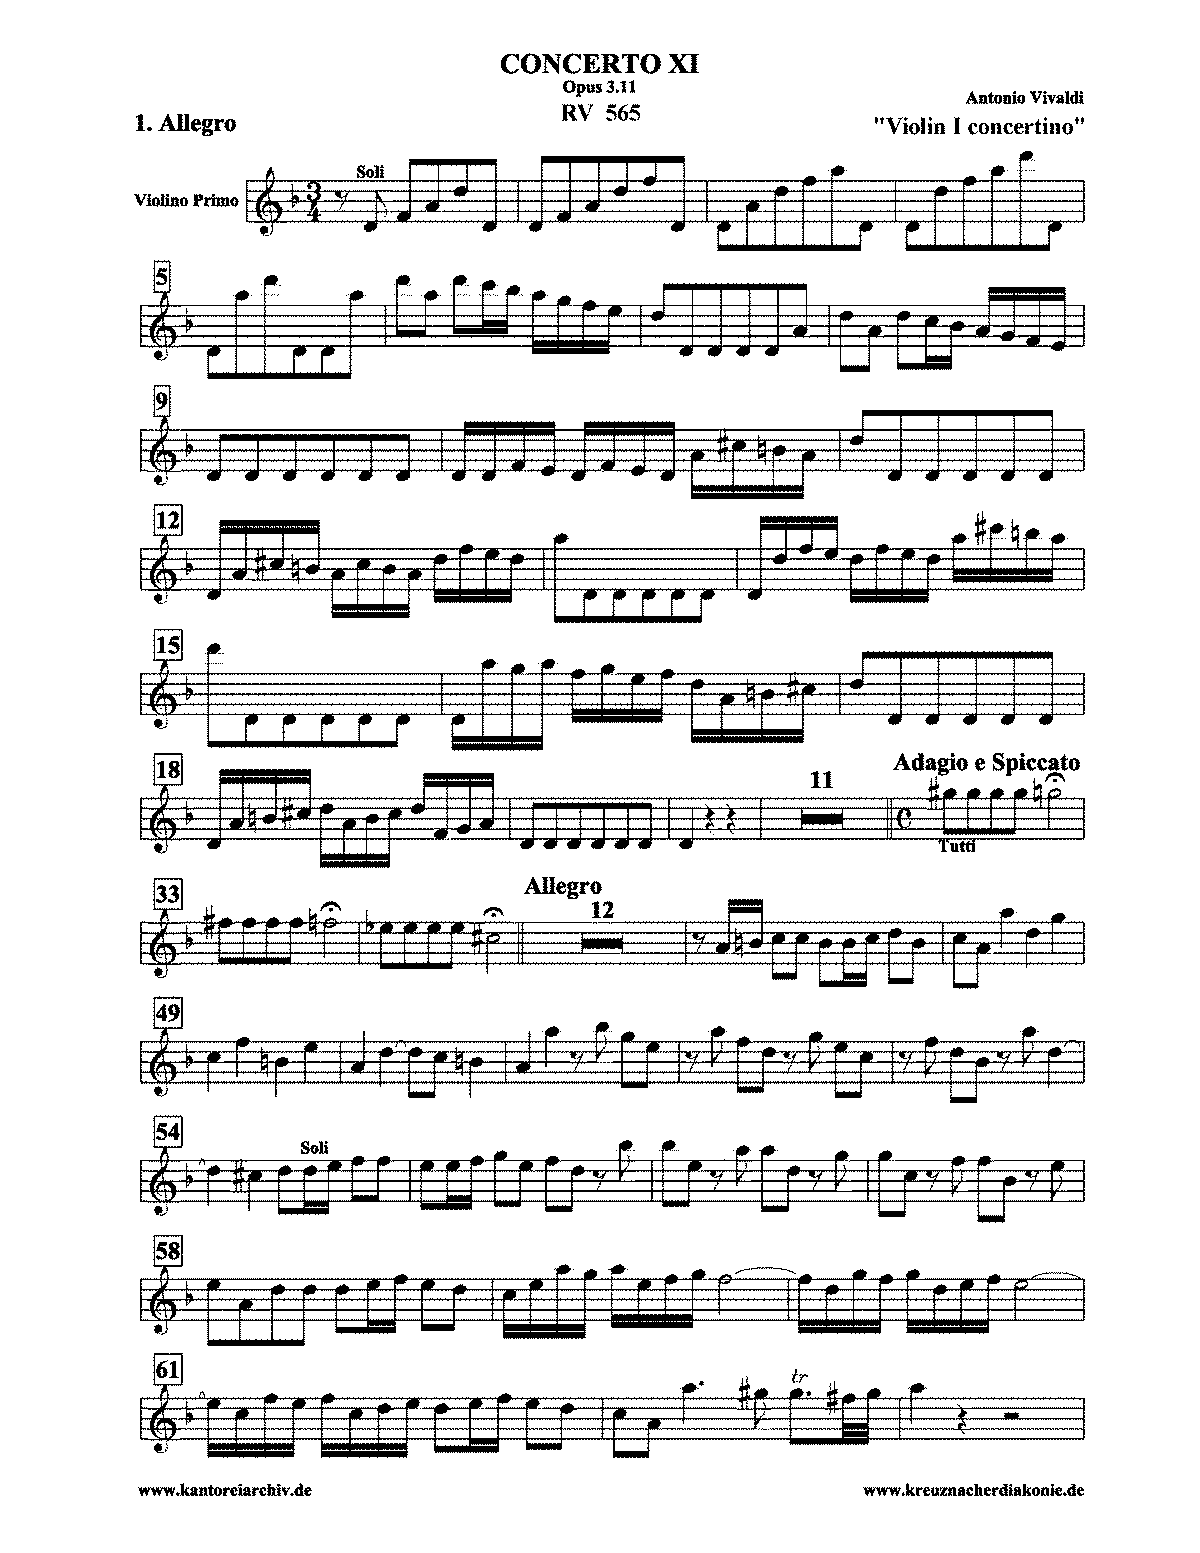 PMLP126416-VIVALDI Concerto grosso op3-11 RV 565 all parts.pdf